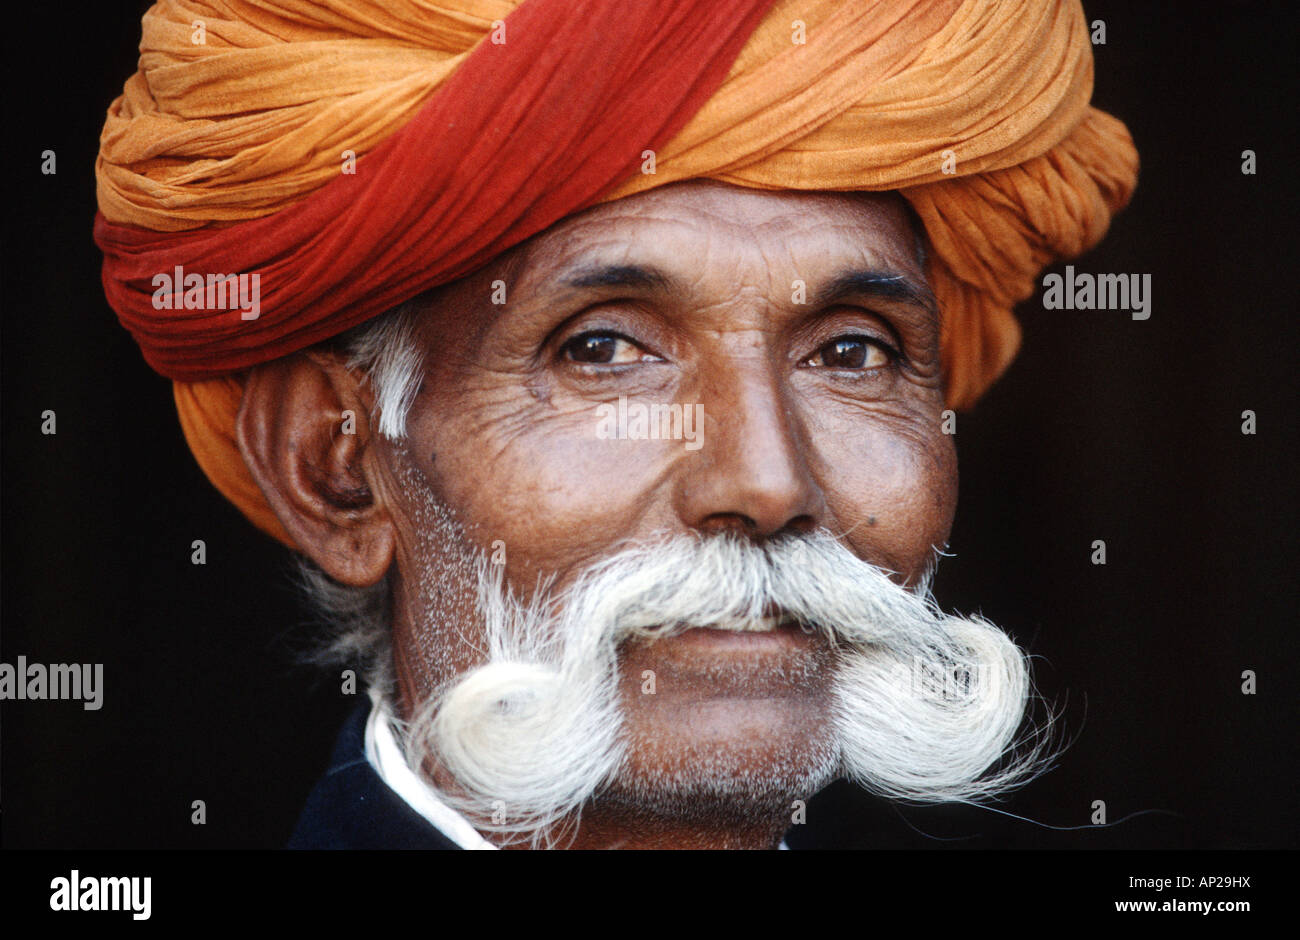 India, Rajastan: portrait of a man with beart and turban - Stock Image